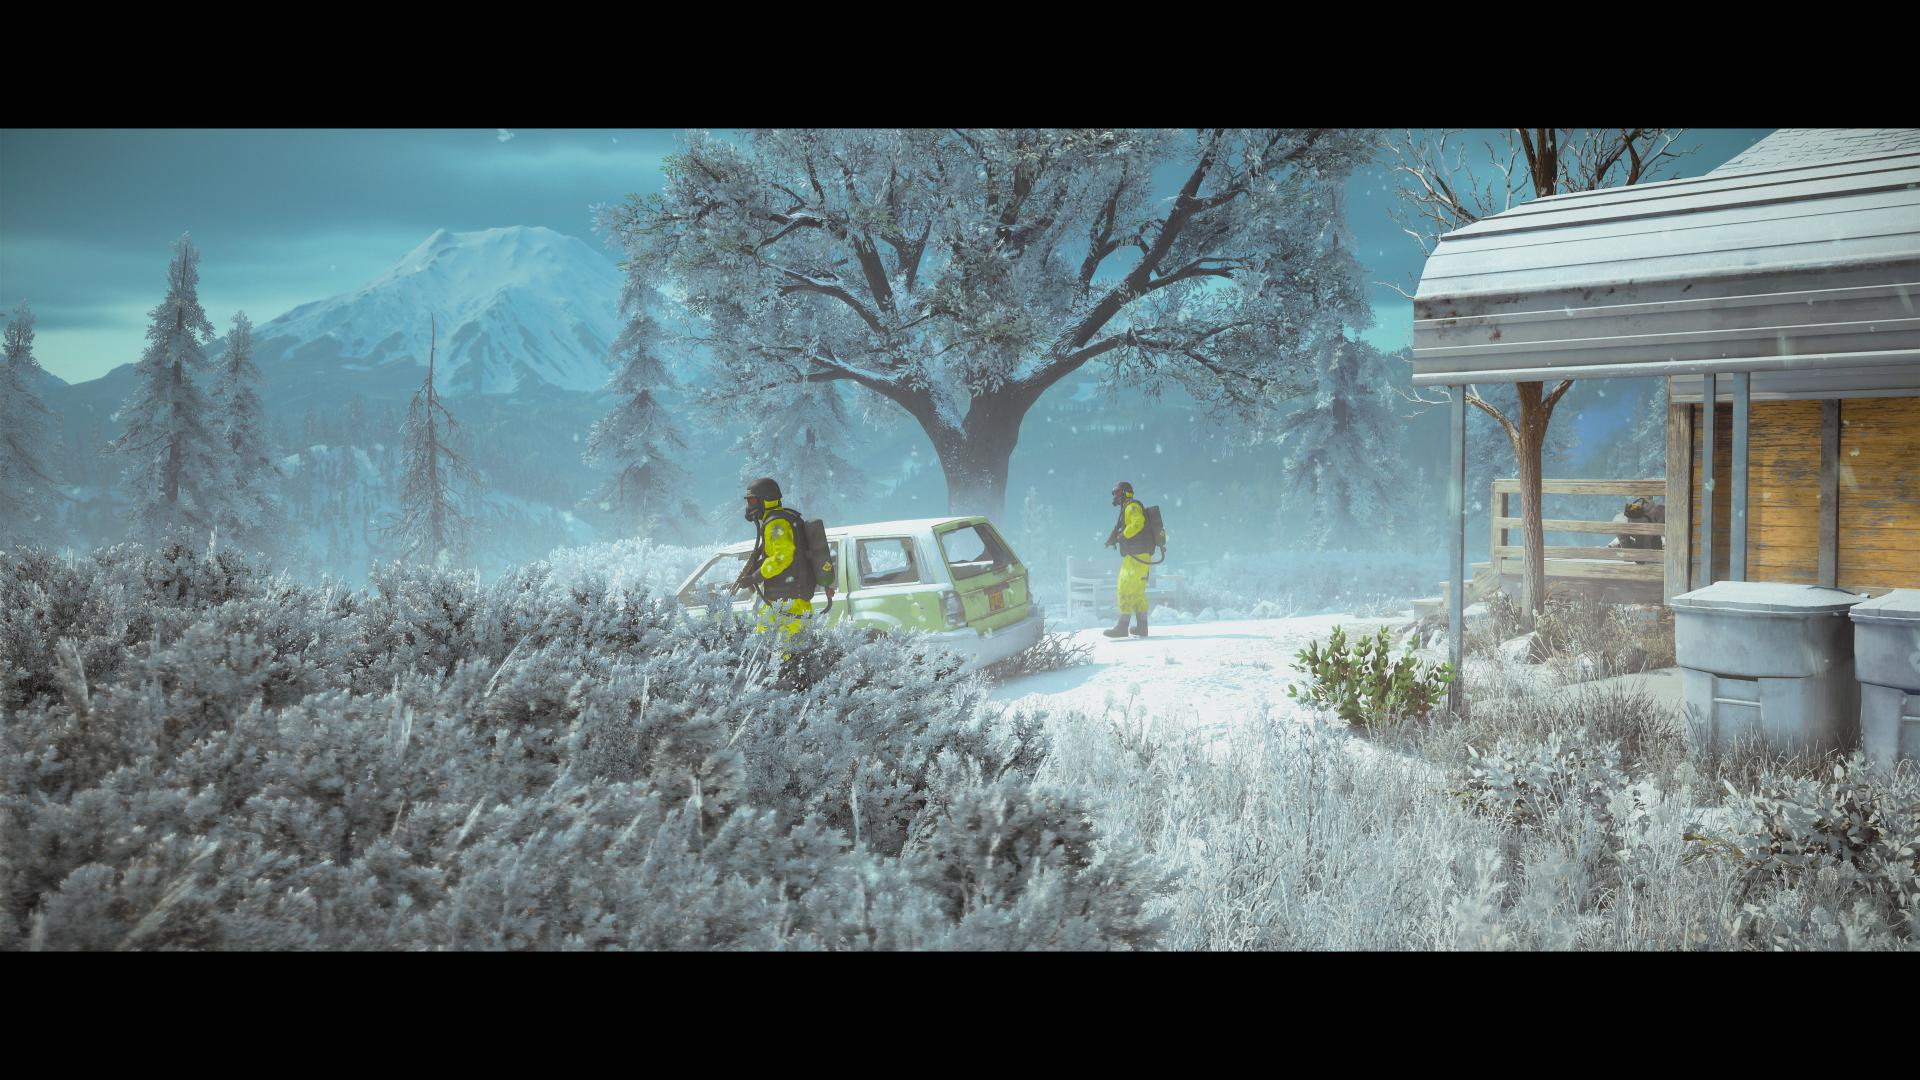 A snow covered ranch, two hazmat suit wearing officials hover around a car suspiciously.